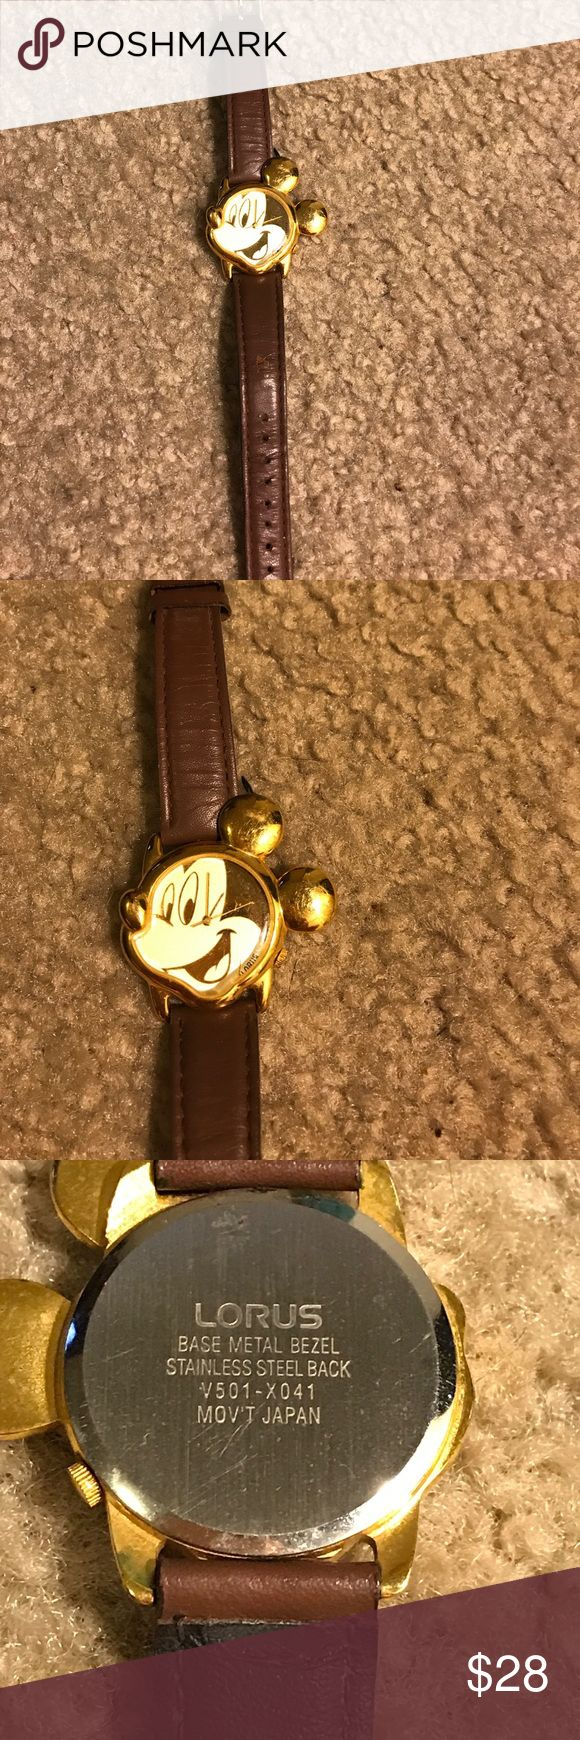 Lorus Mickey Mouse watch Lorus Base Metal Bezel Stainless Steel back V501-X047 MOVT Japan Lorus Accessories Watches